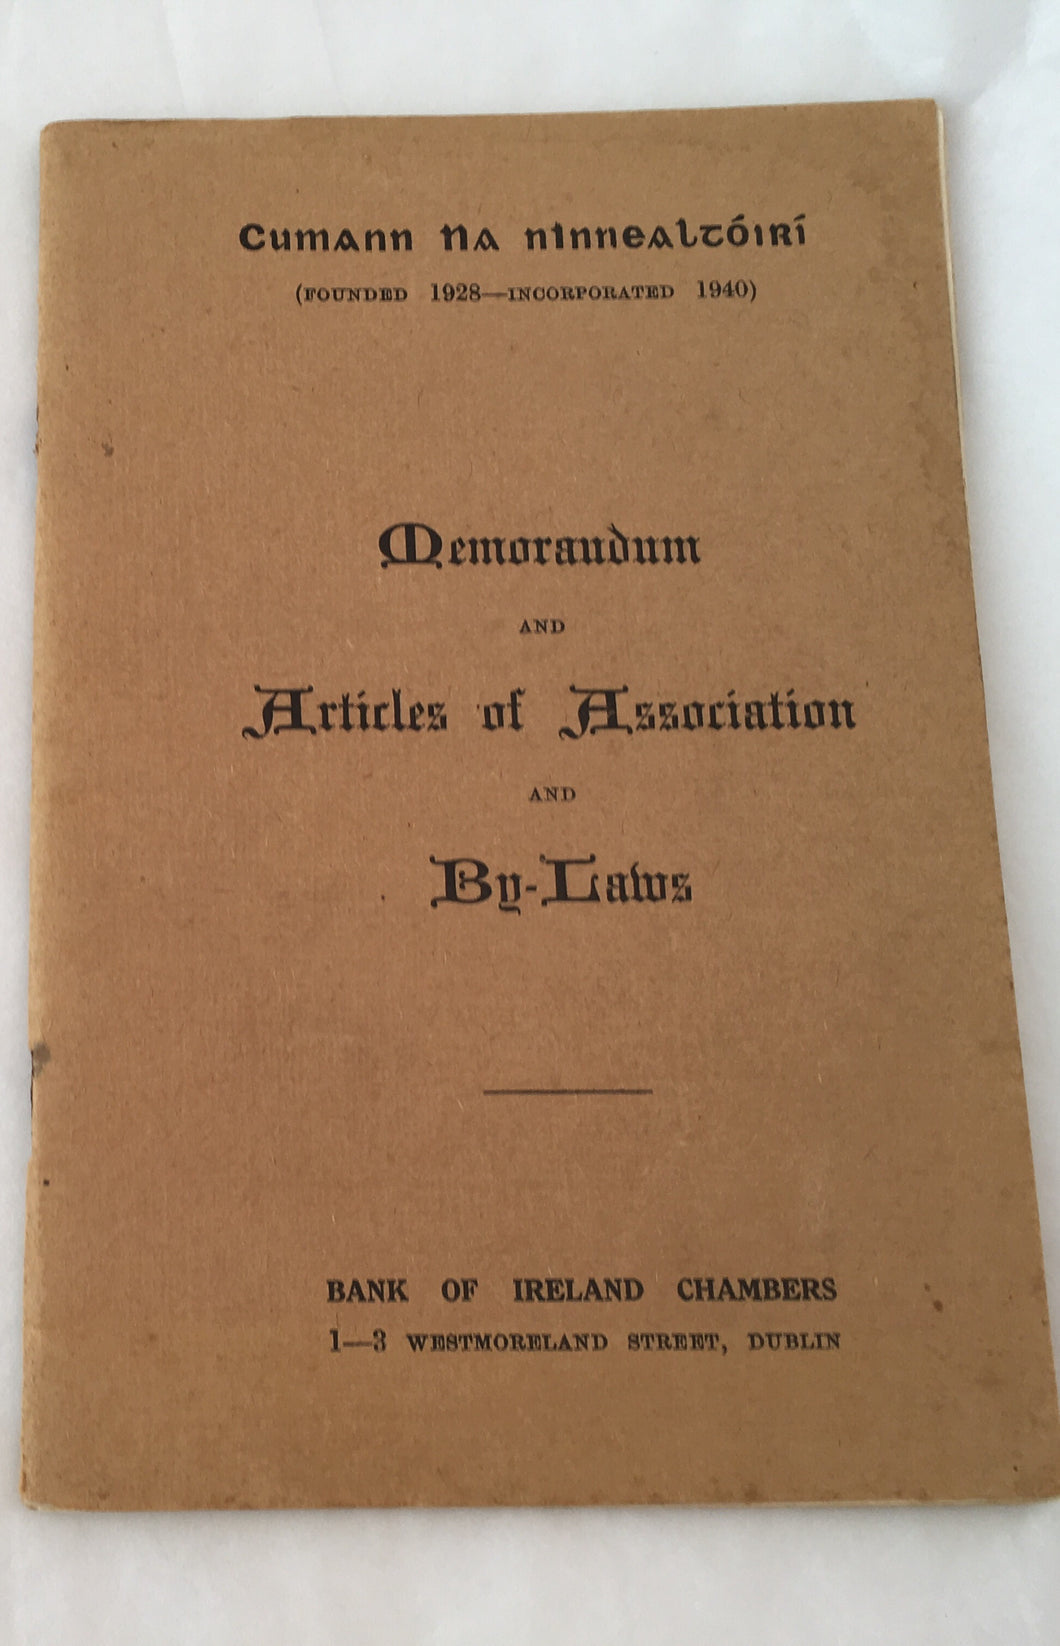 Memorandum and Articles of Association and By-Laws - Bank of Ireland Chambers